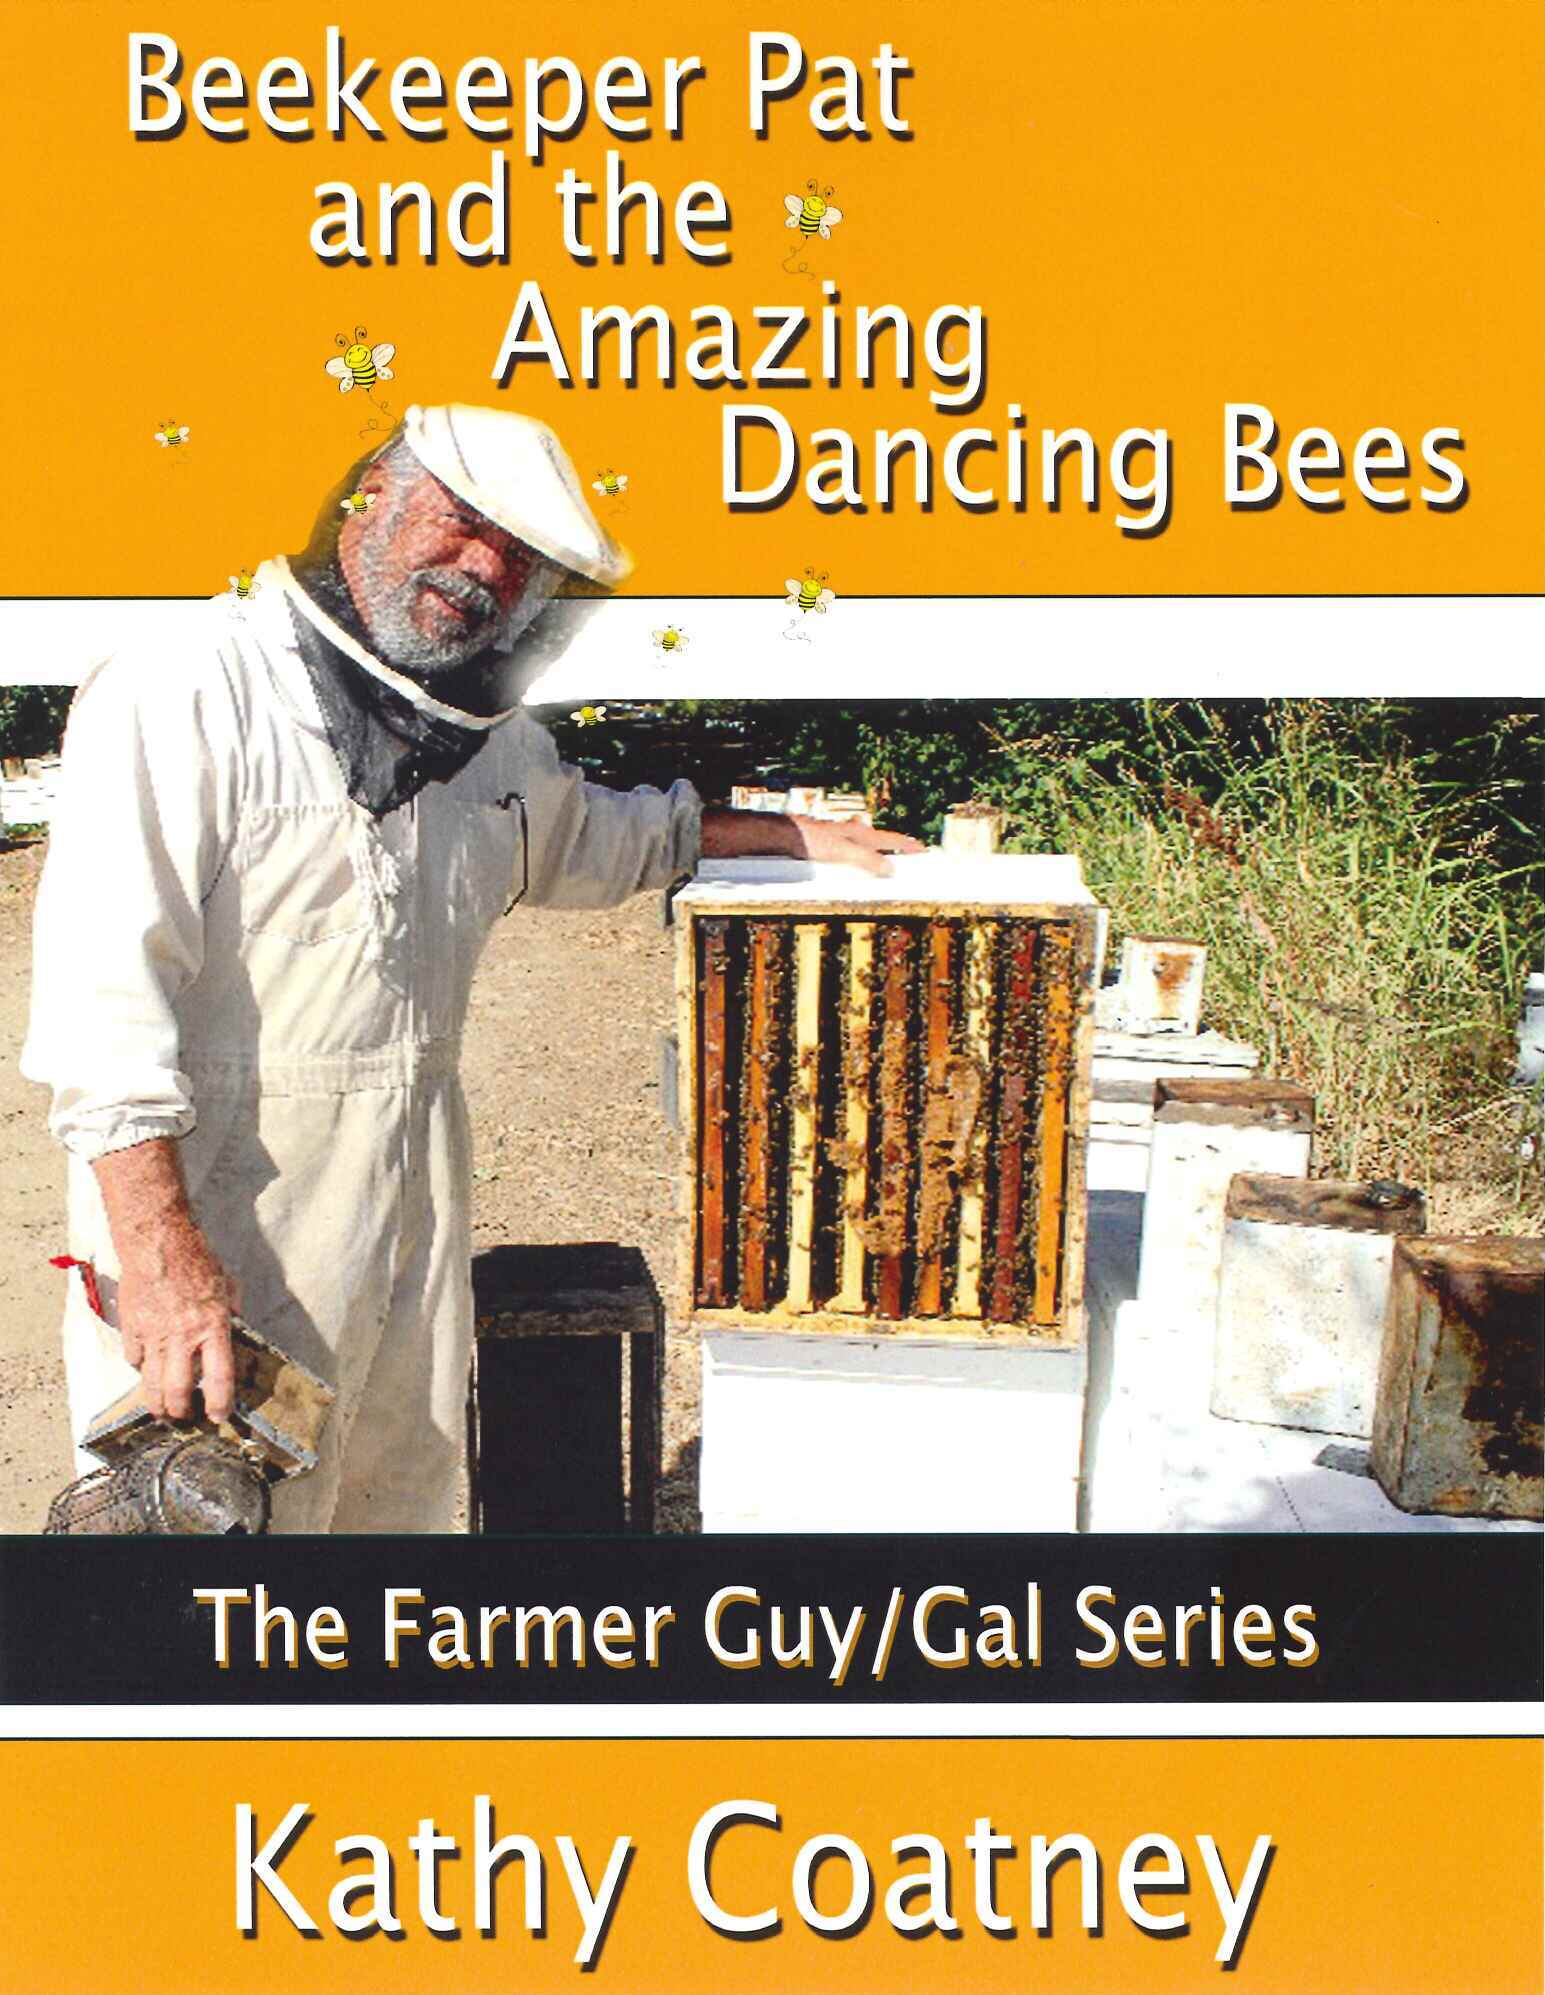 1139Beekeeper Pat and the Amazing Dancing Bees